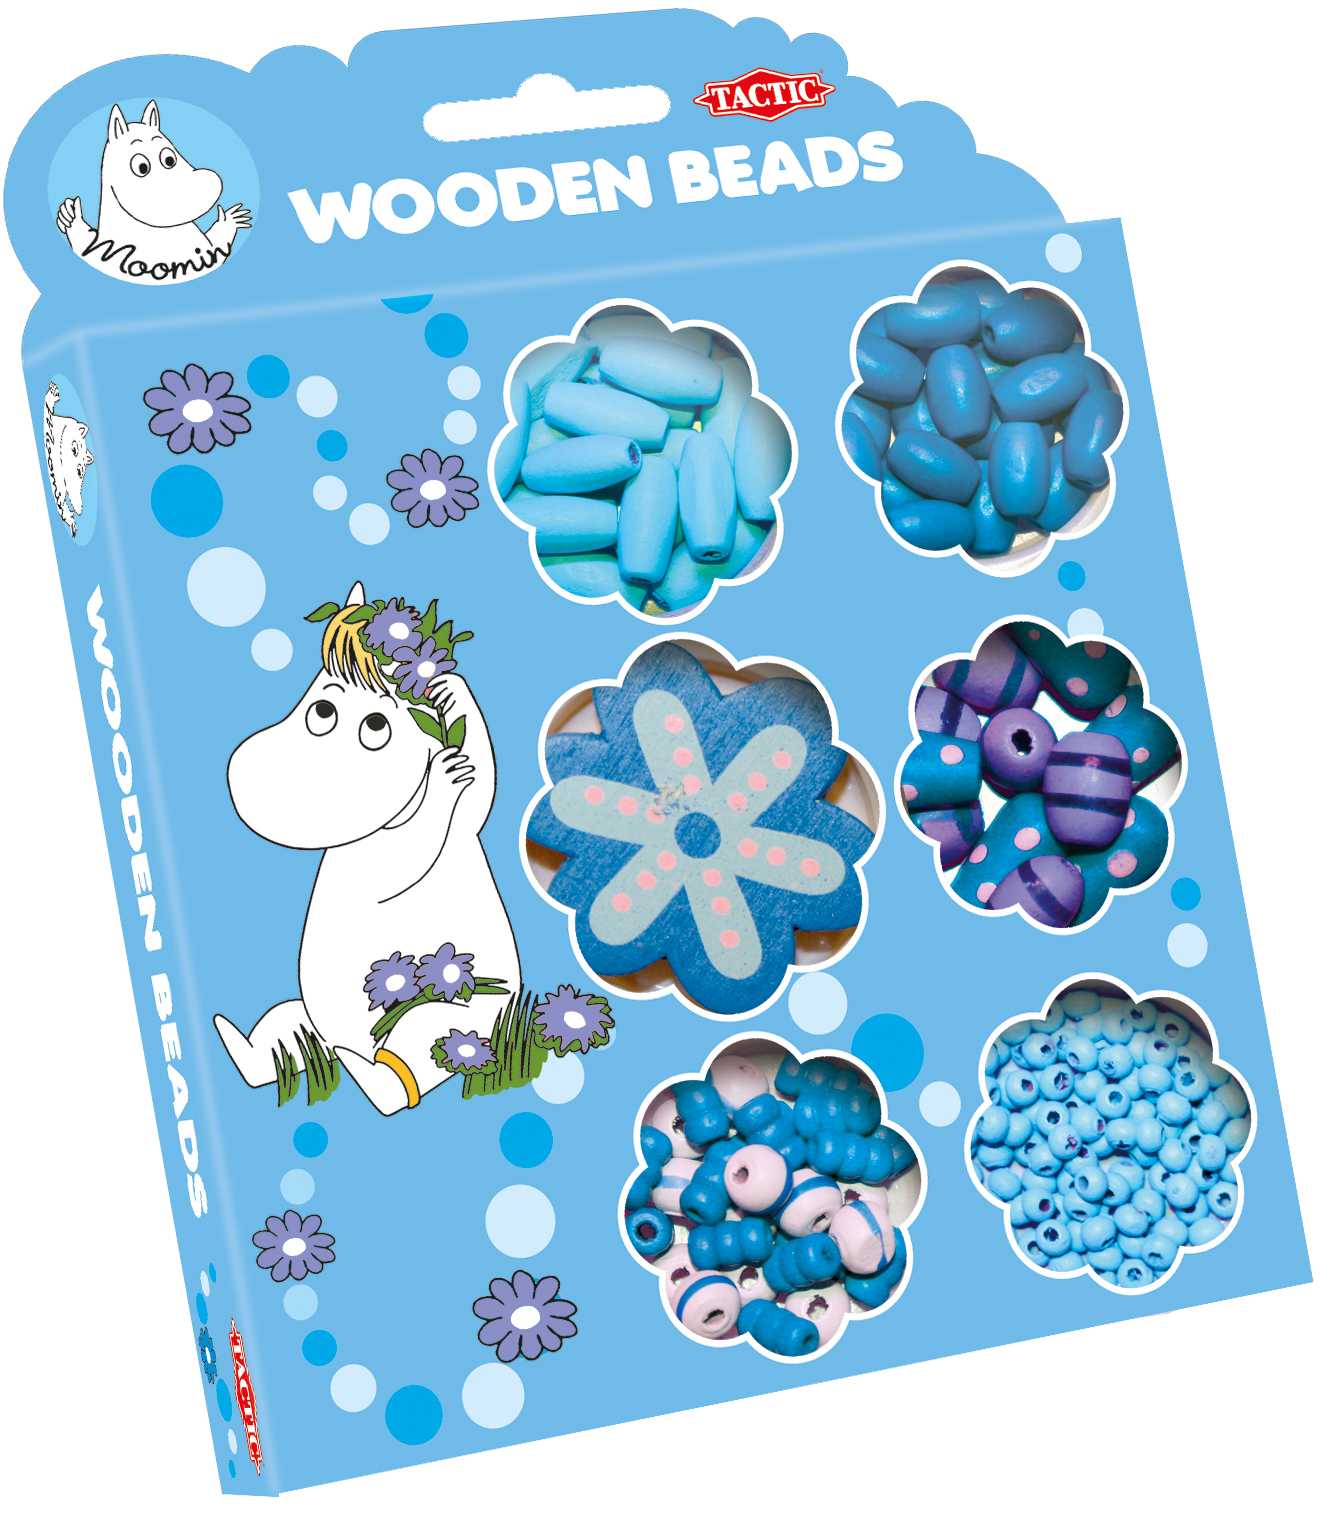 Tactic Moomin wooden beads blue